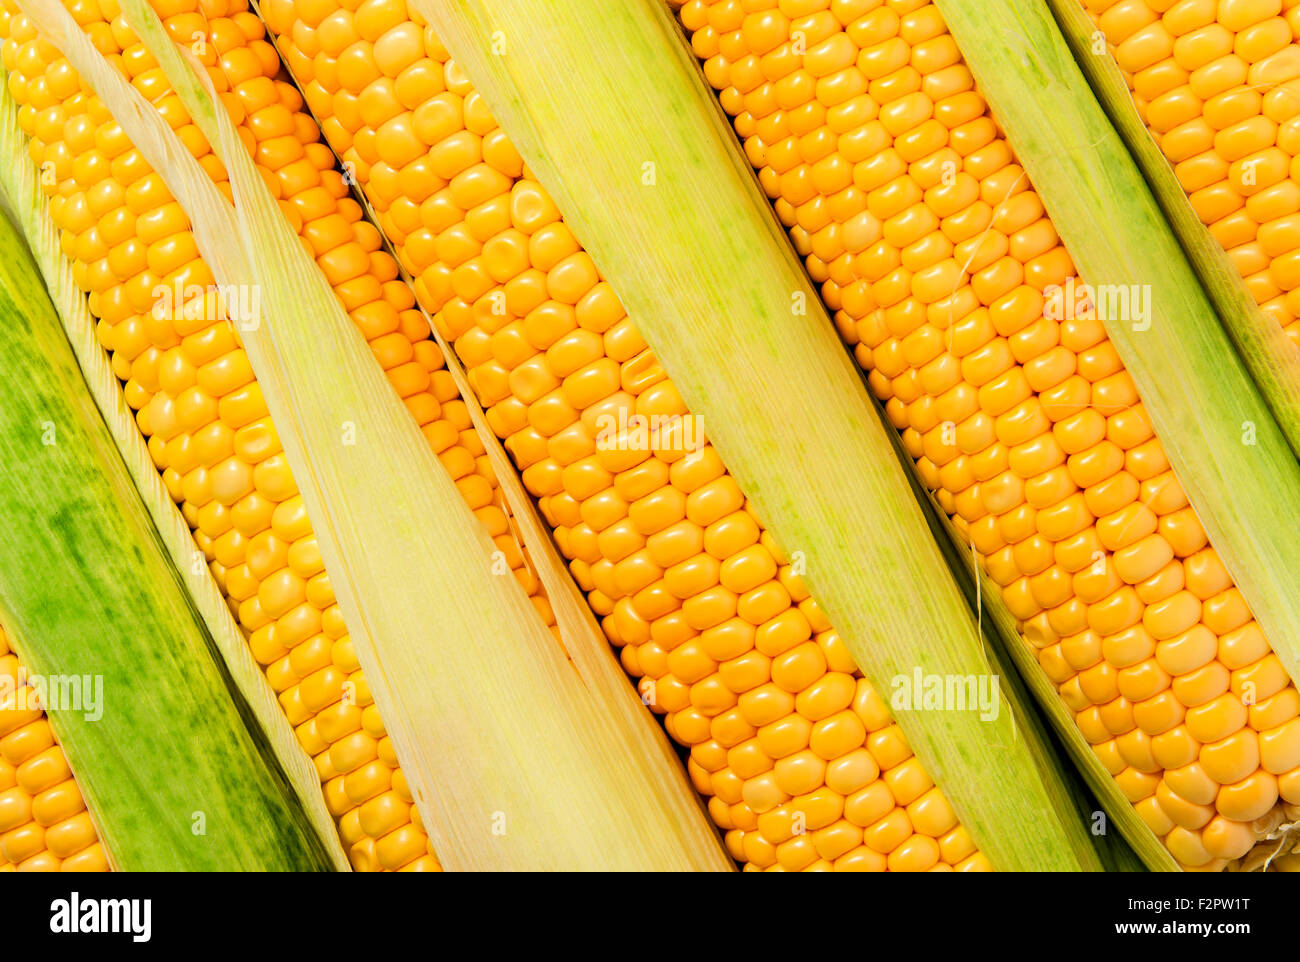 Background of stacked near peeled corn cobs diagonally - Stock Image